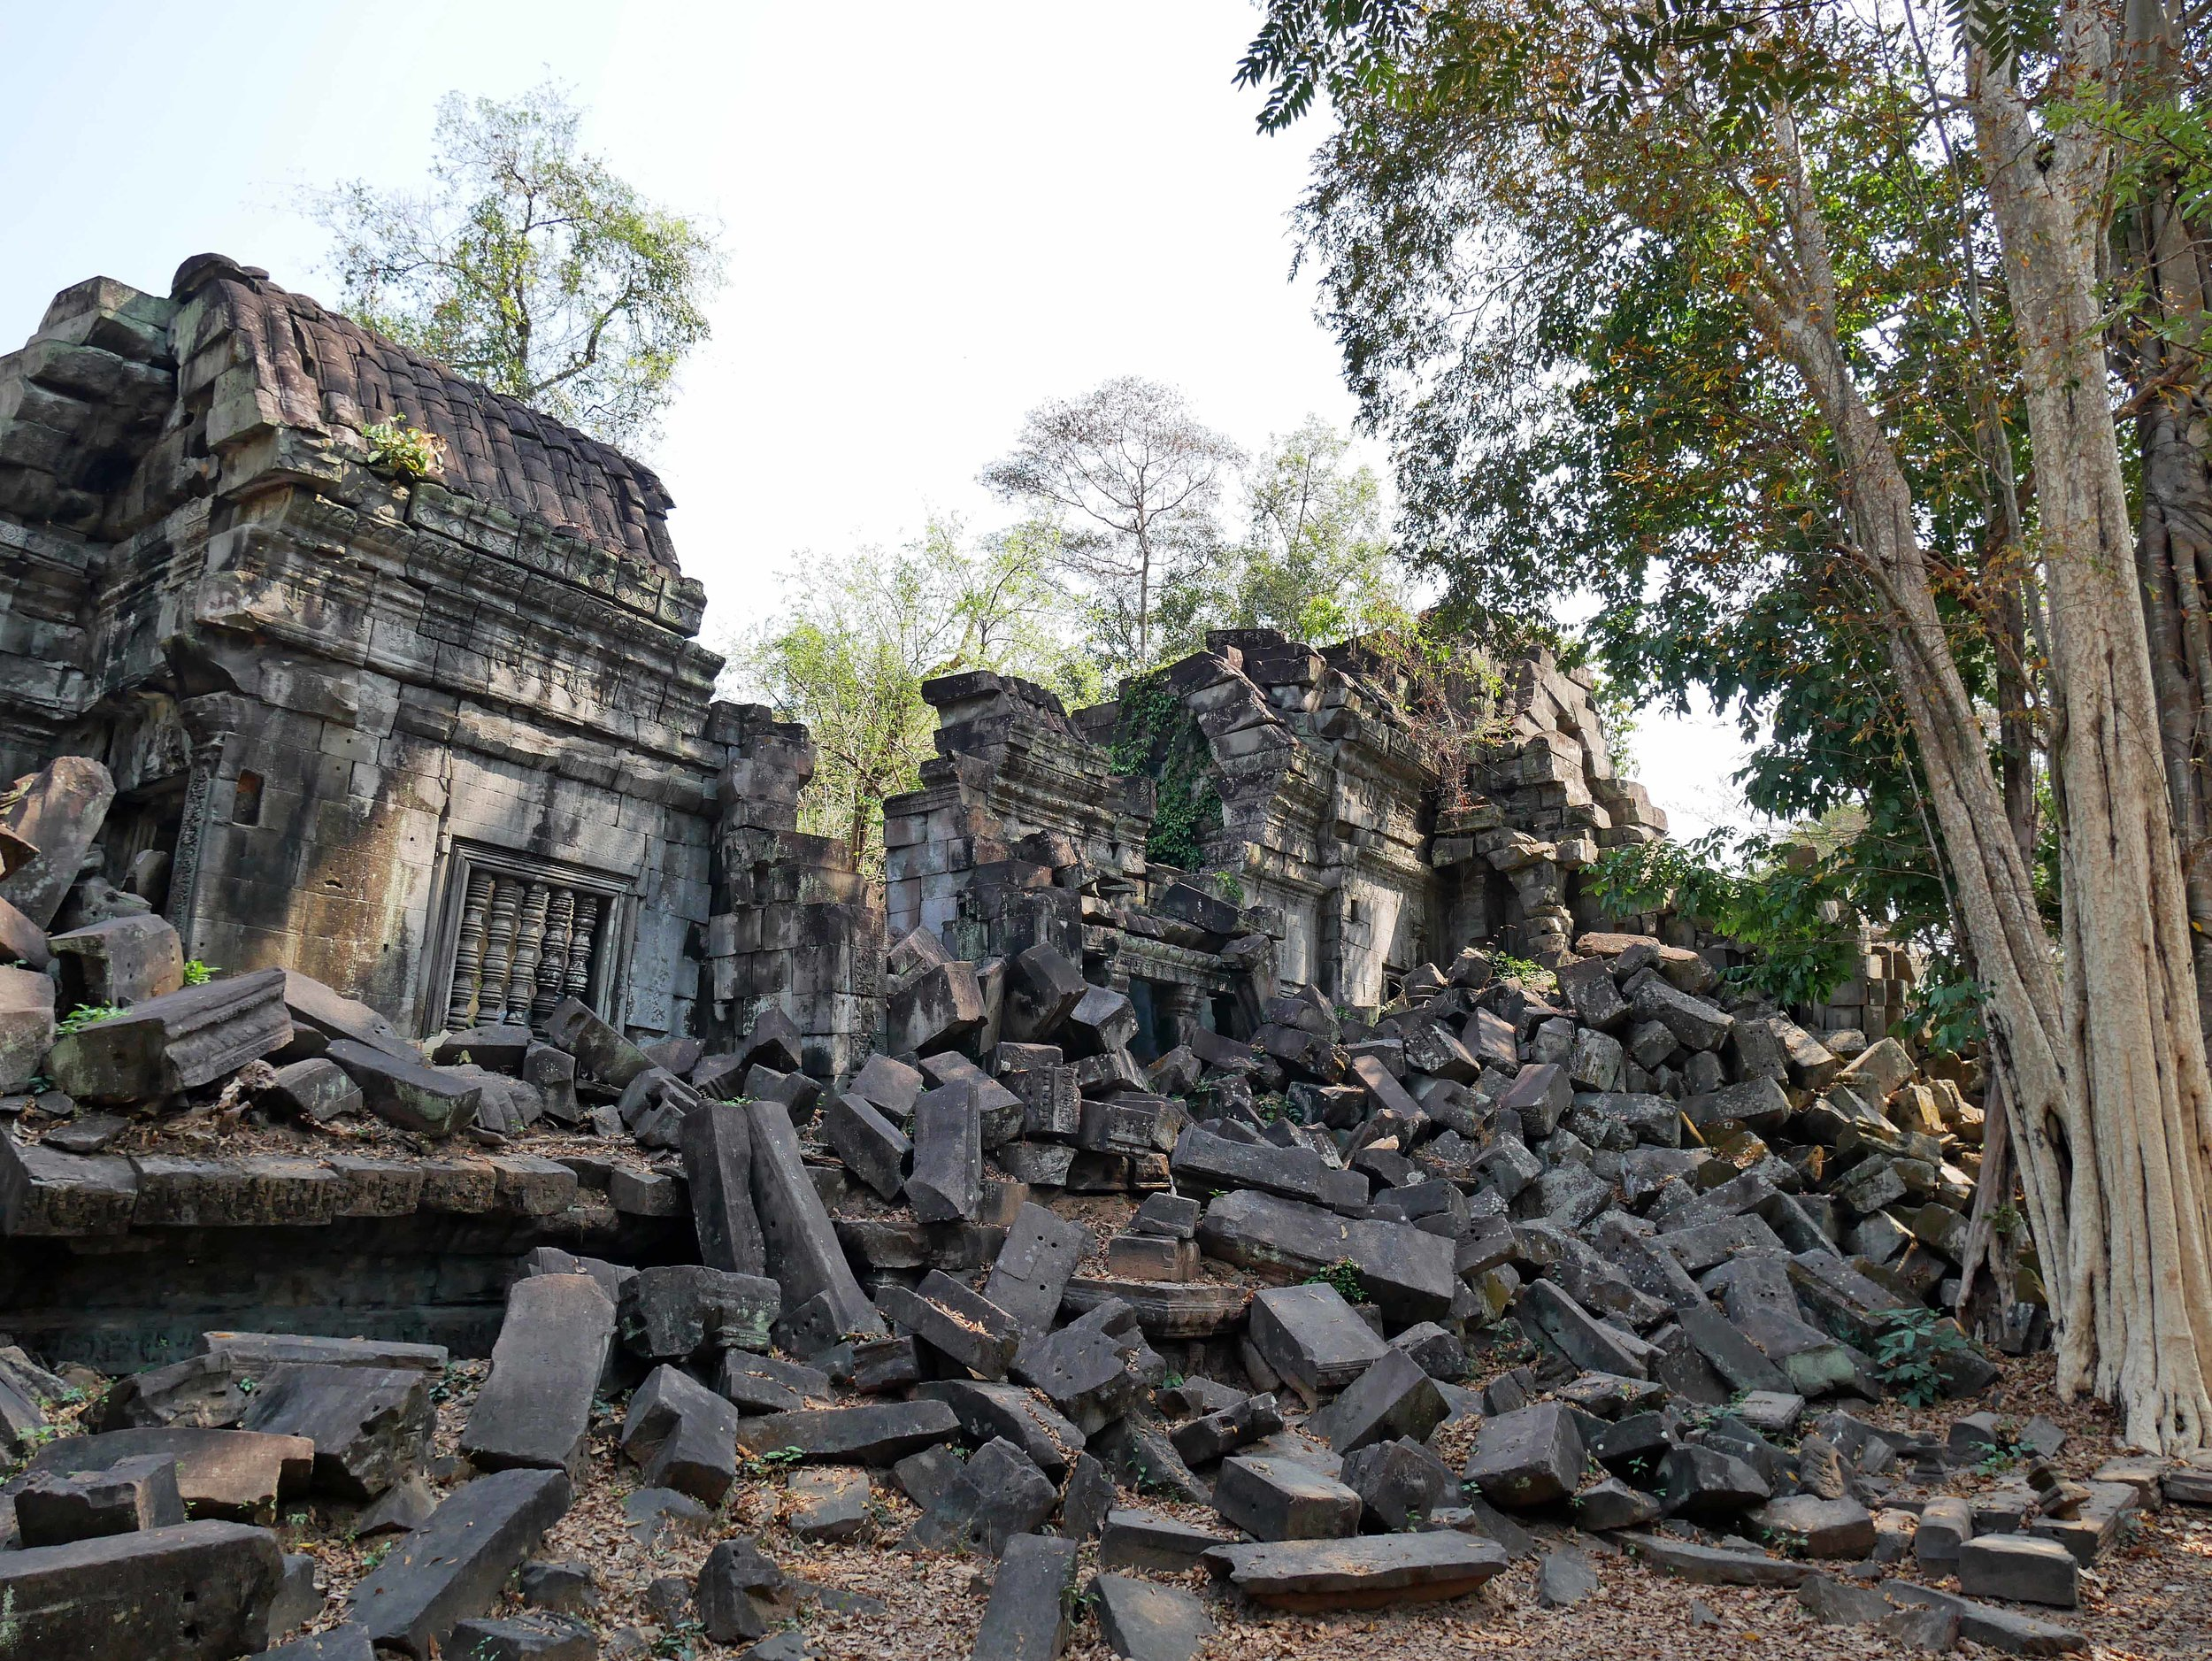 Beng Mealea was the center of the town when it was constructed, featuring a 45 metre wide moat (March 1).